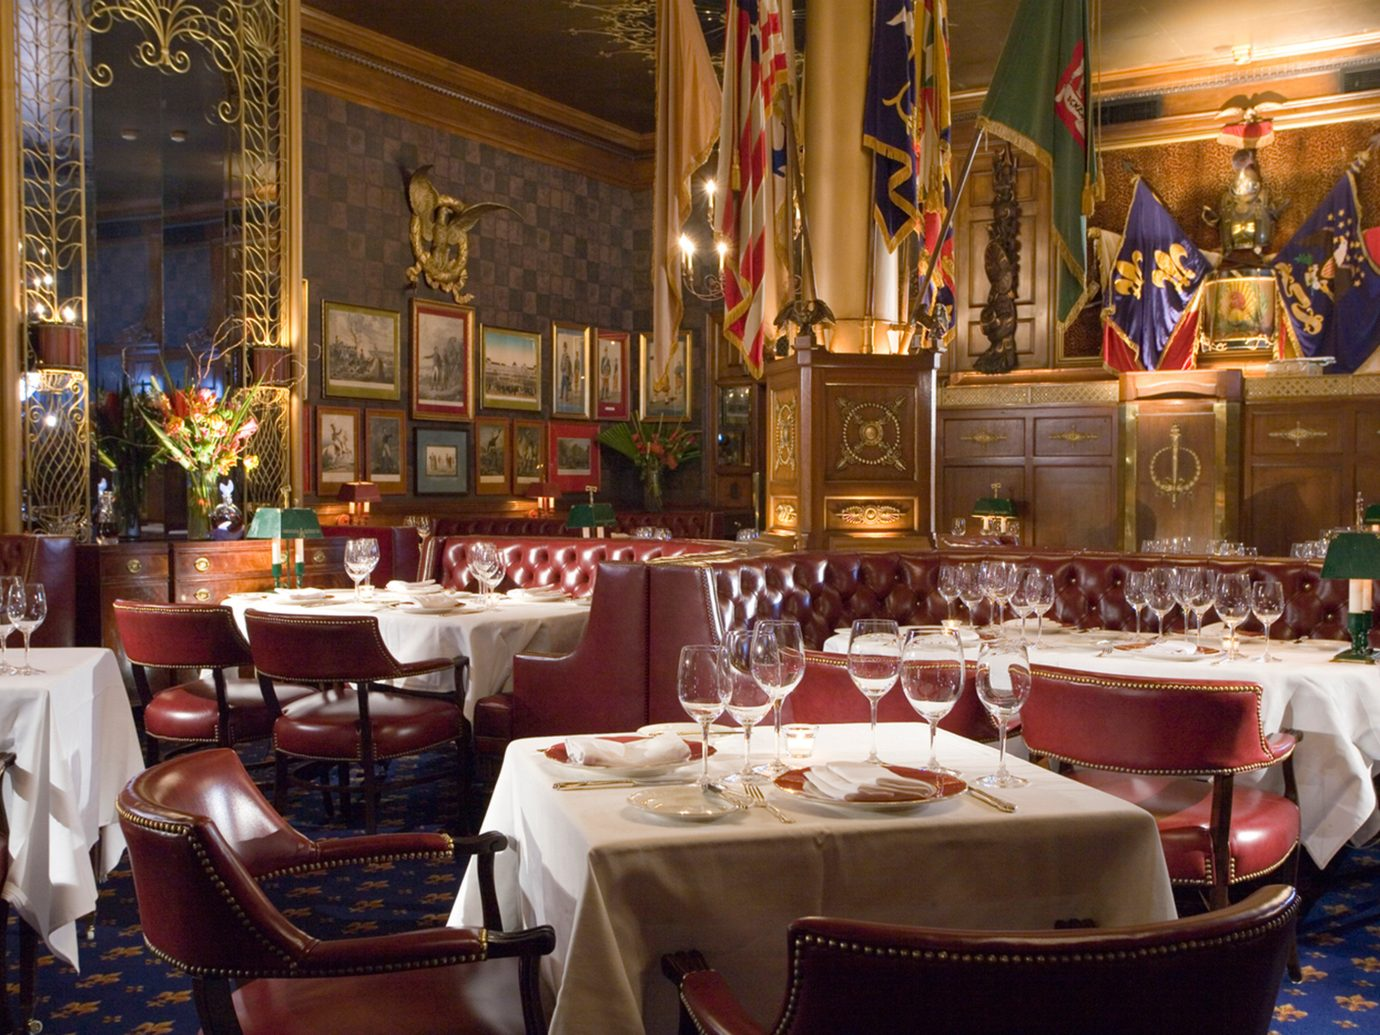 Bar Dining Drink Eat Elegant Historic Hotels meal restaurant function hall several